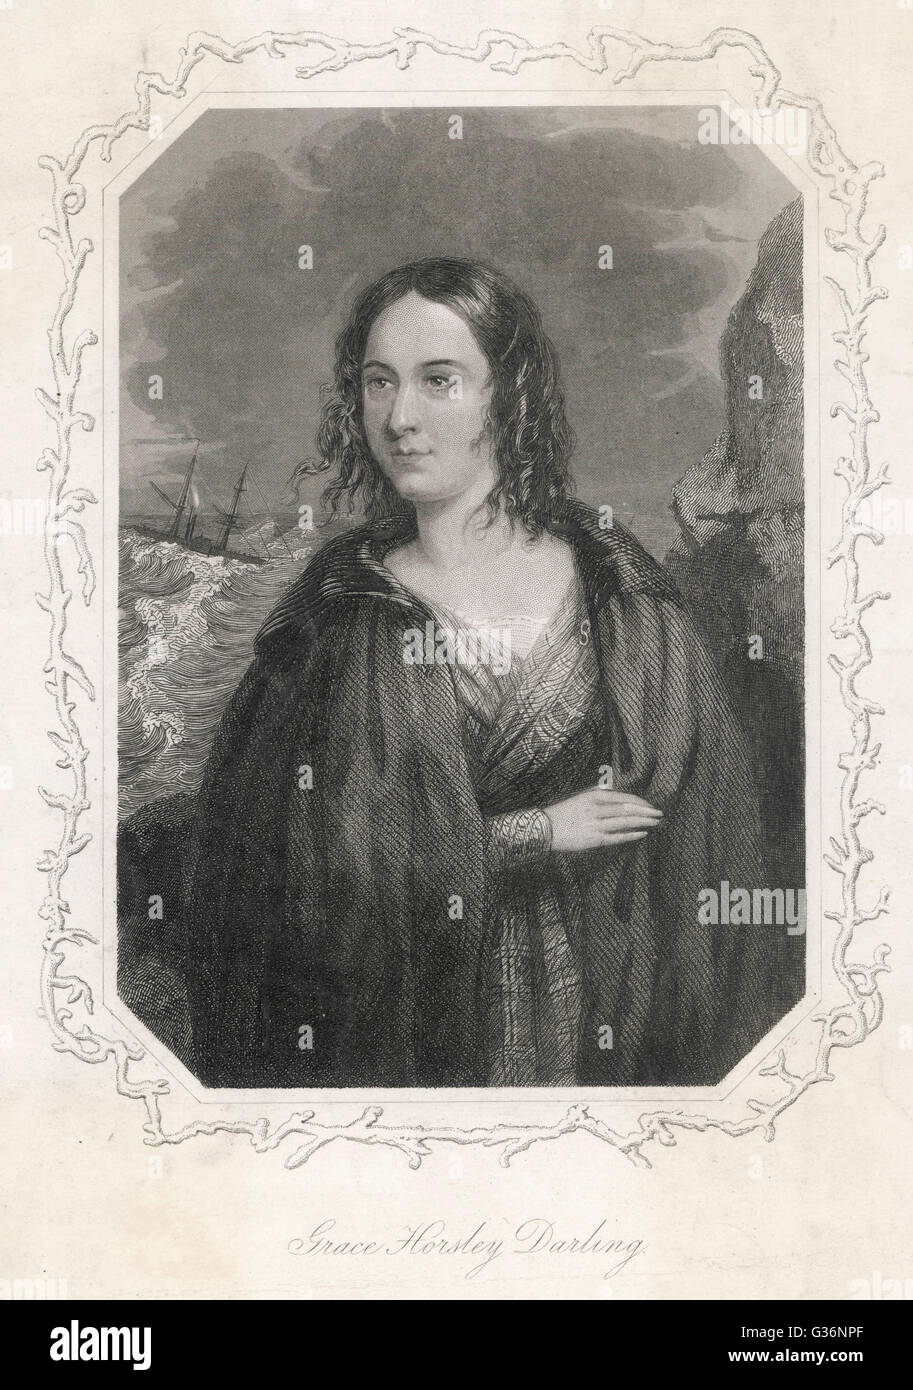 Grace Horsley Darling (1815-1842), daughter of the lighthouse keeper, William Darling, on the Farne Islands, who rowed with her father to the sinking steamboat the SS Forfarshire in 1838 -- together they saved 13 people from the wreck.      Date: circa 18 Stock Photo